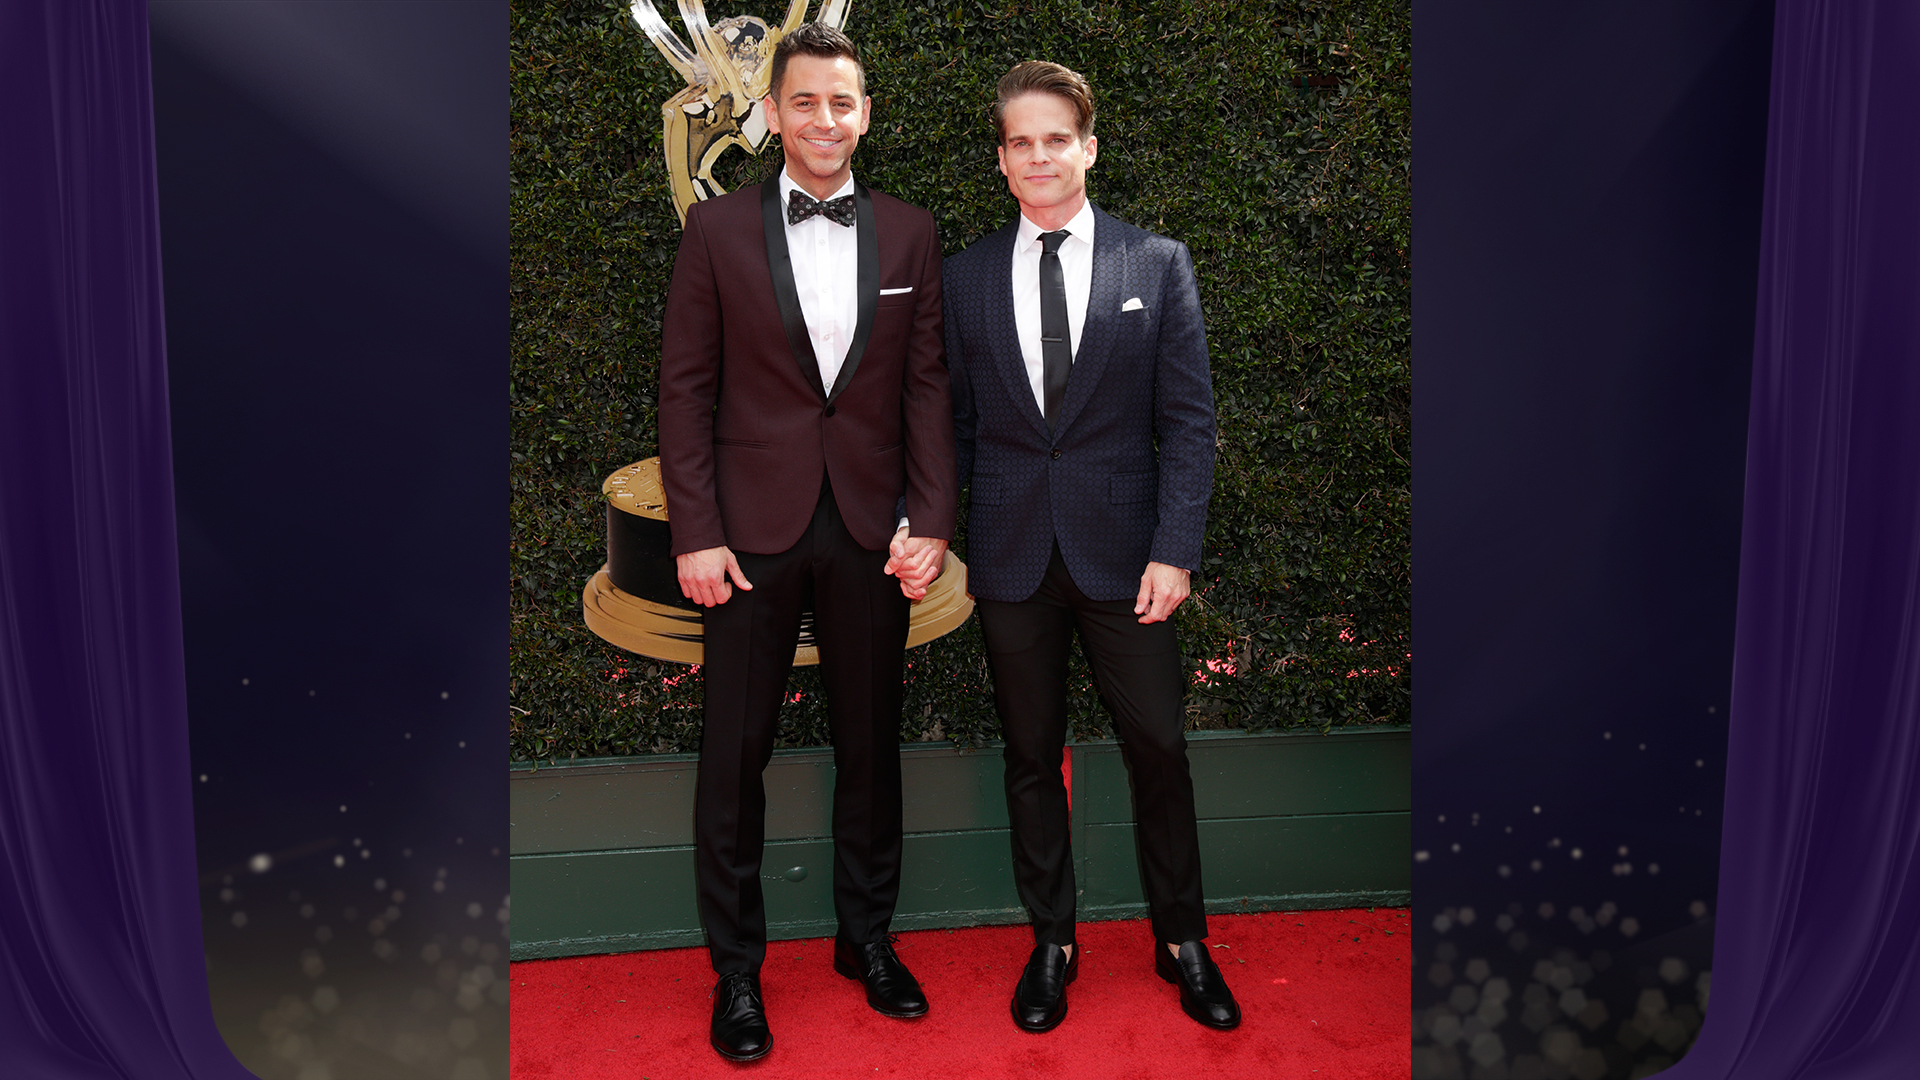 Greg Rikaart, who's nominated for Outstanding Supporting Actor in a Drama Series for his work on The Young and the Restless, holds hands with his husband before the big event.